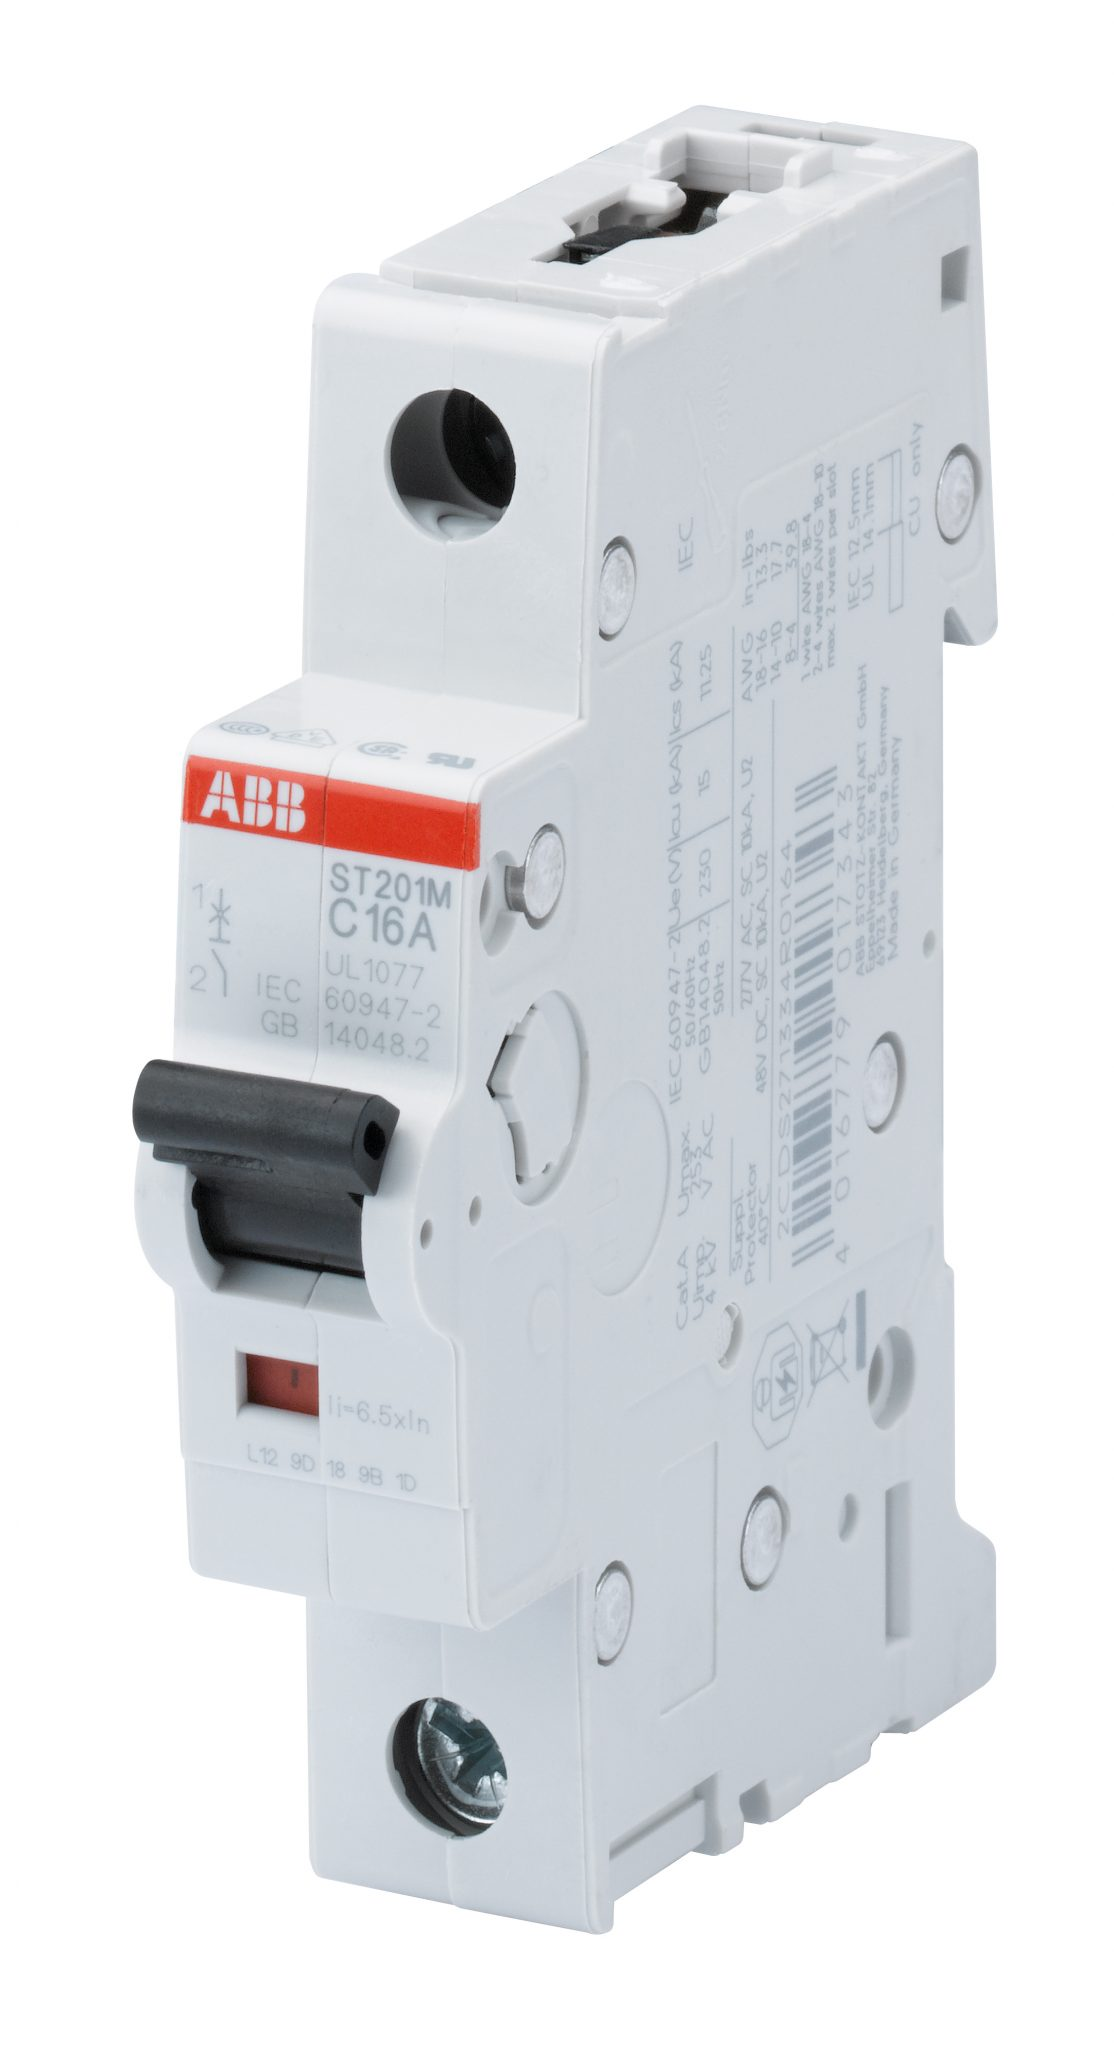 Abb Introduces High Performance Ul 1077 Supplementary Protectors Wiring Short Circuit St200m Miniature Breakers